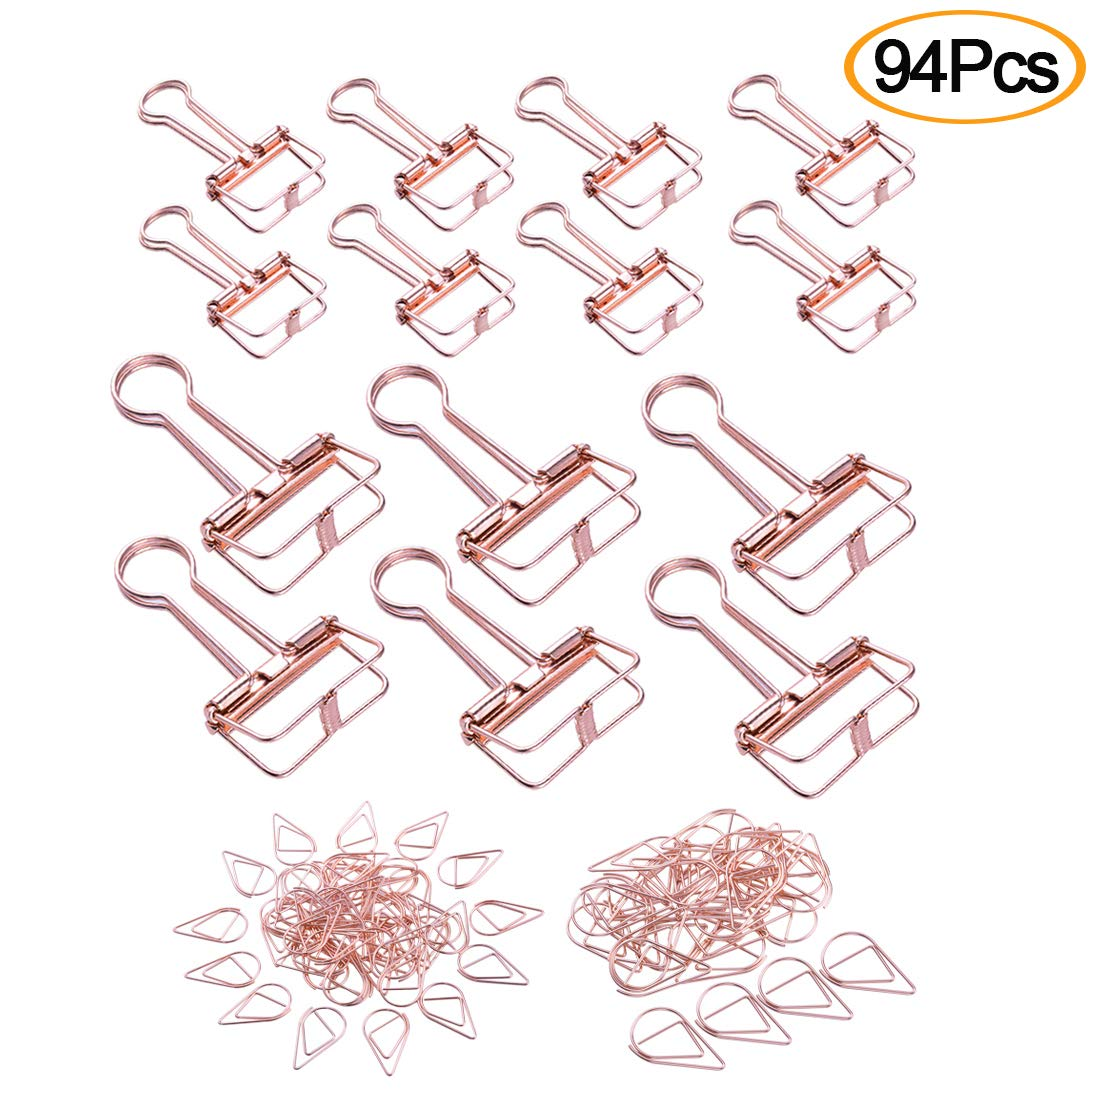 94Pcs Rose Gold Clips Set Include 14 pcs Binder Clips and 80 pcs Paper Clips,4 Sizes Suitable for Home, Office,School